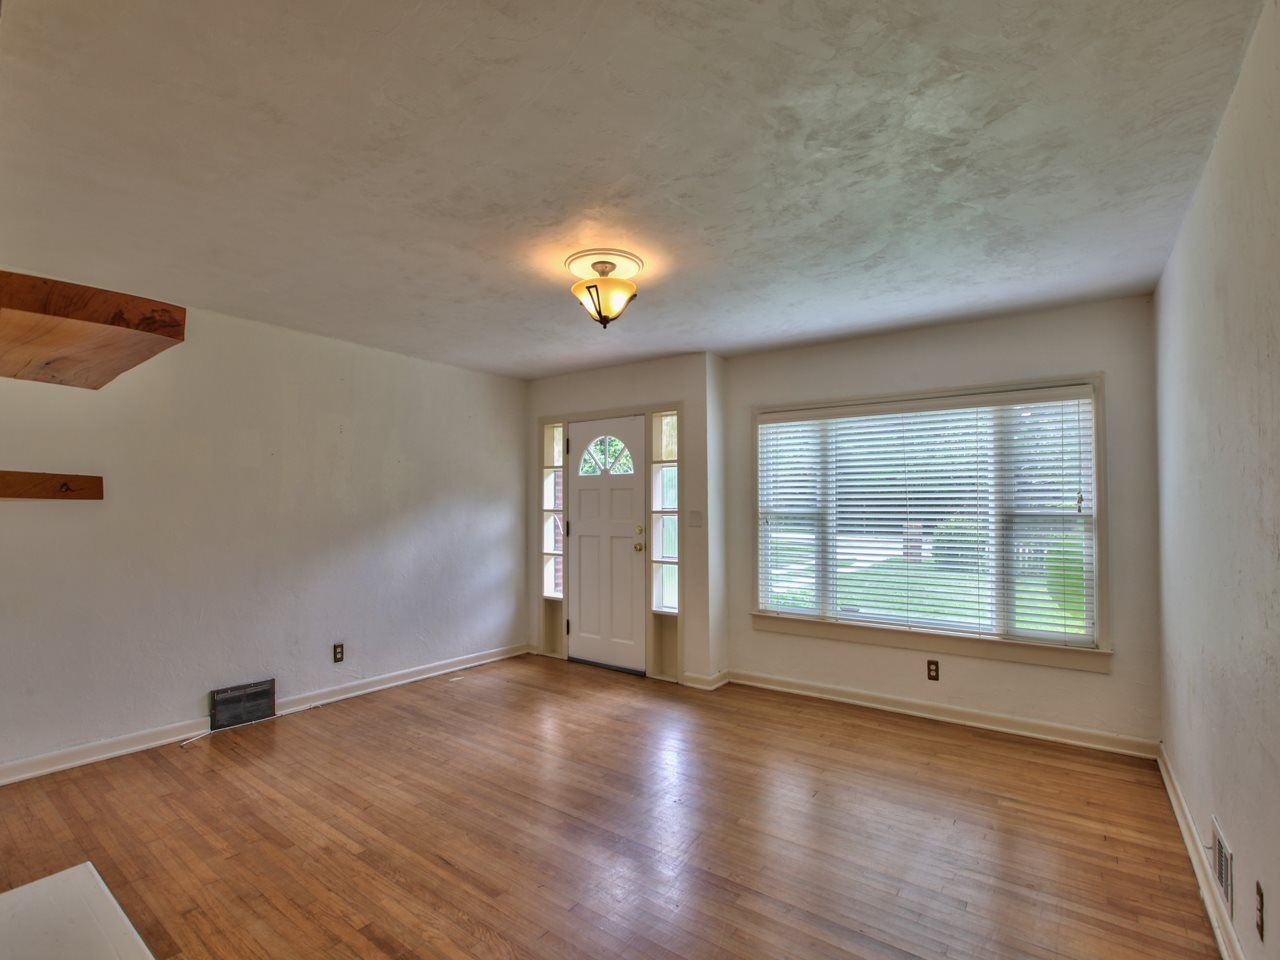 Photo of 2107 Monticello Drive, TALLAHASSEE, FL 32303 (MLS # 326983)